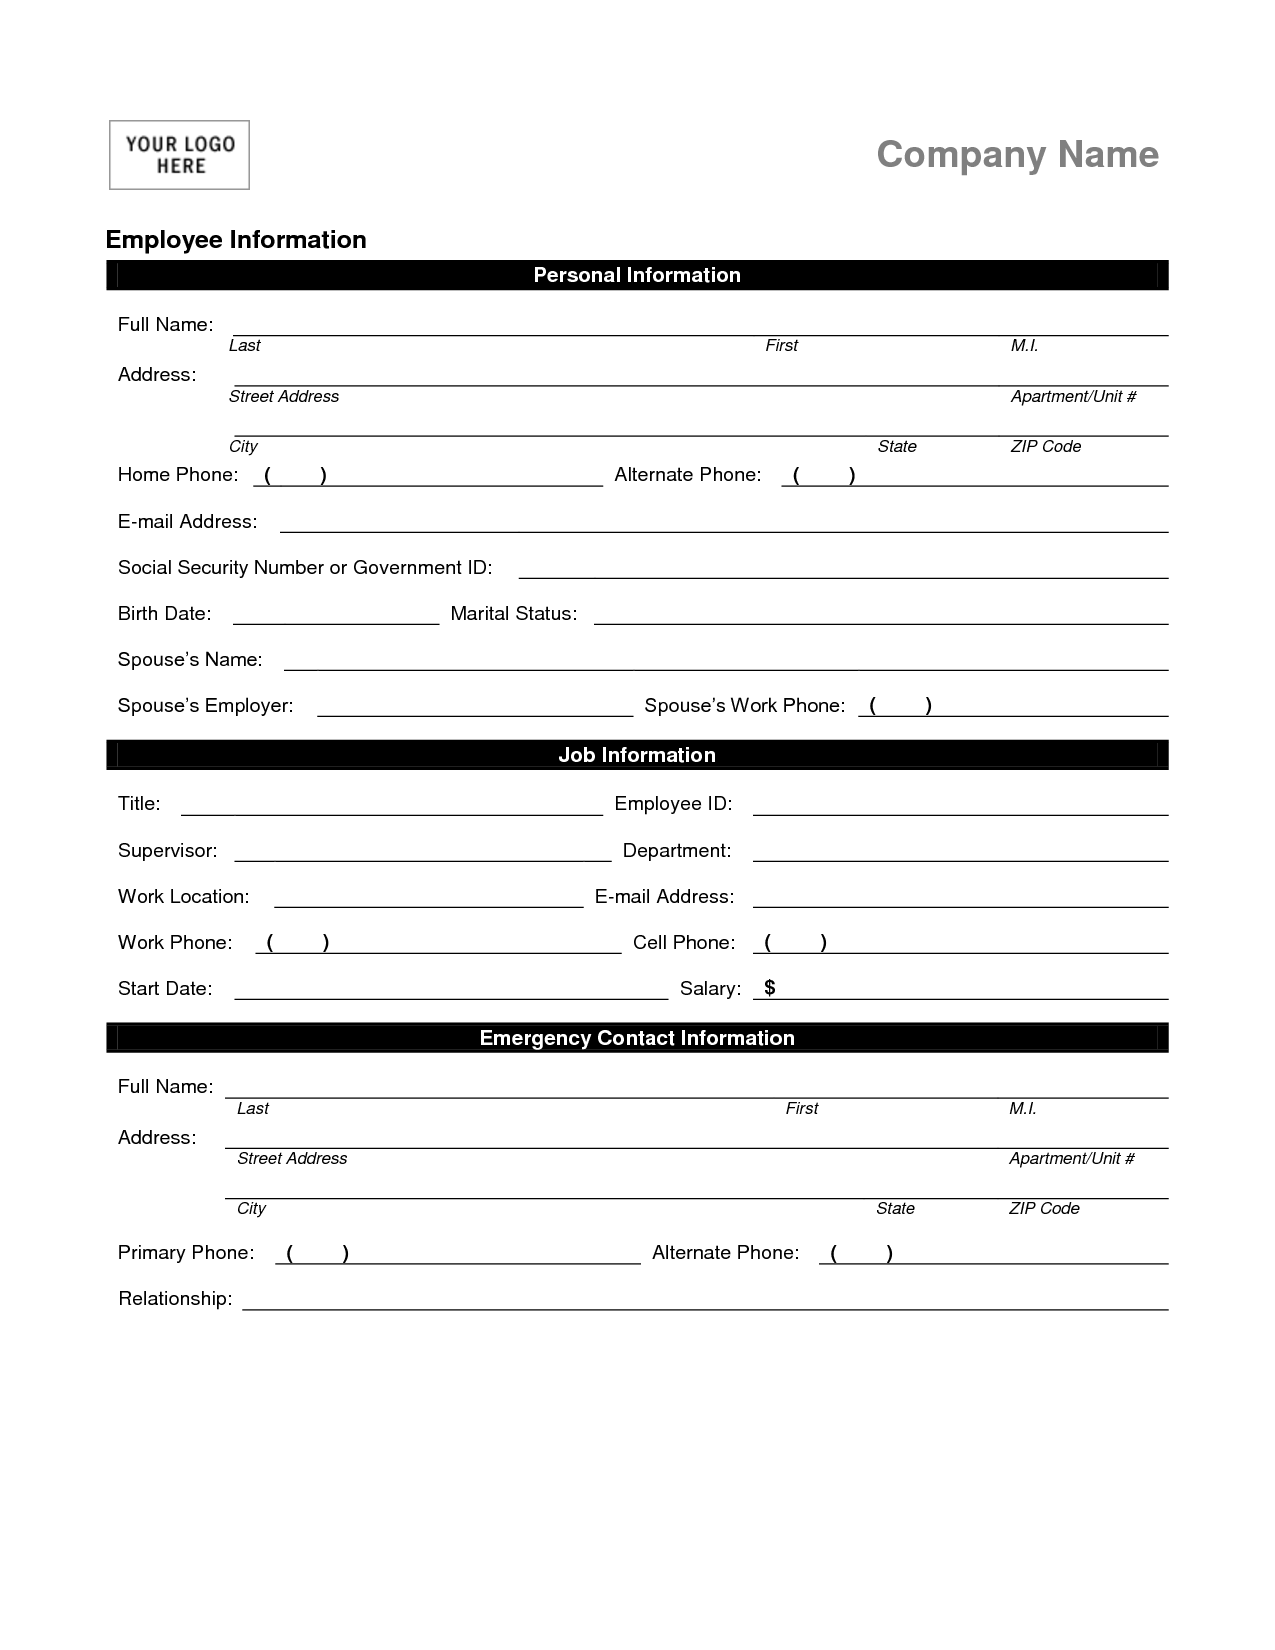 Employee Personal Information Form Template Hardsell Pinterest